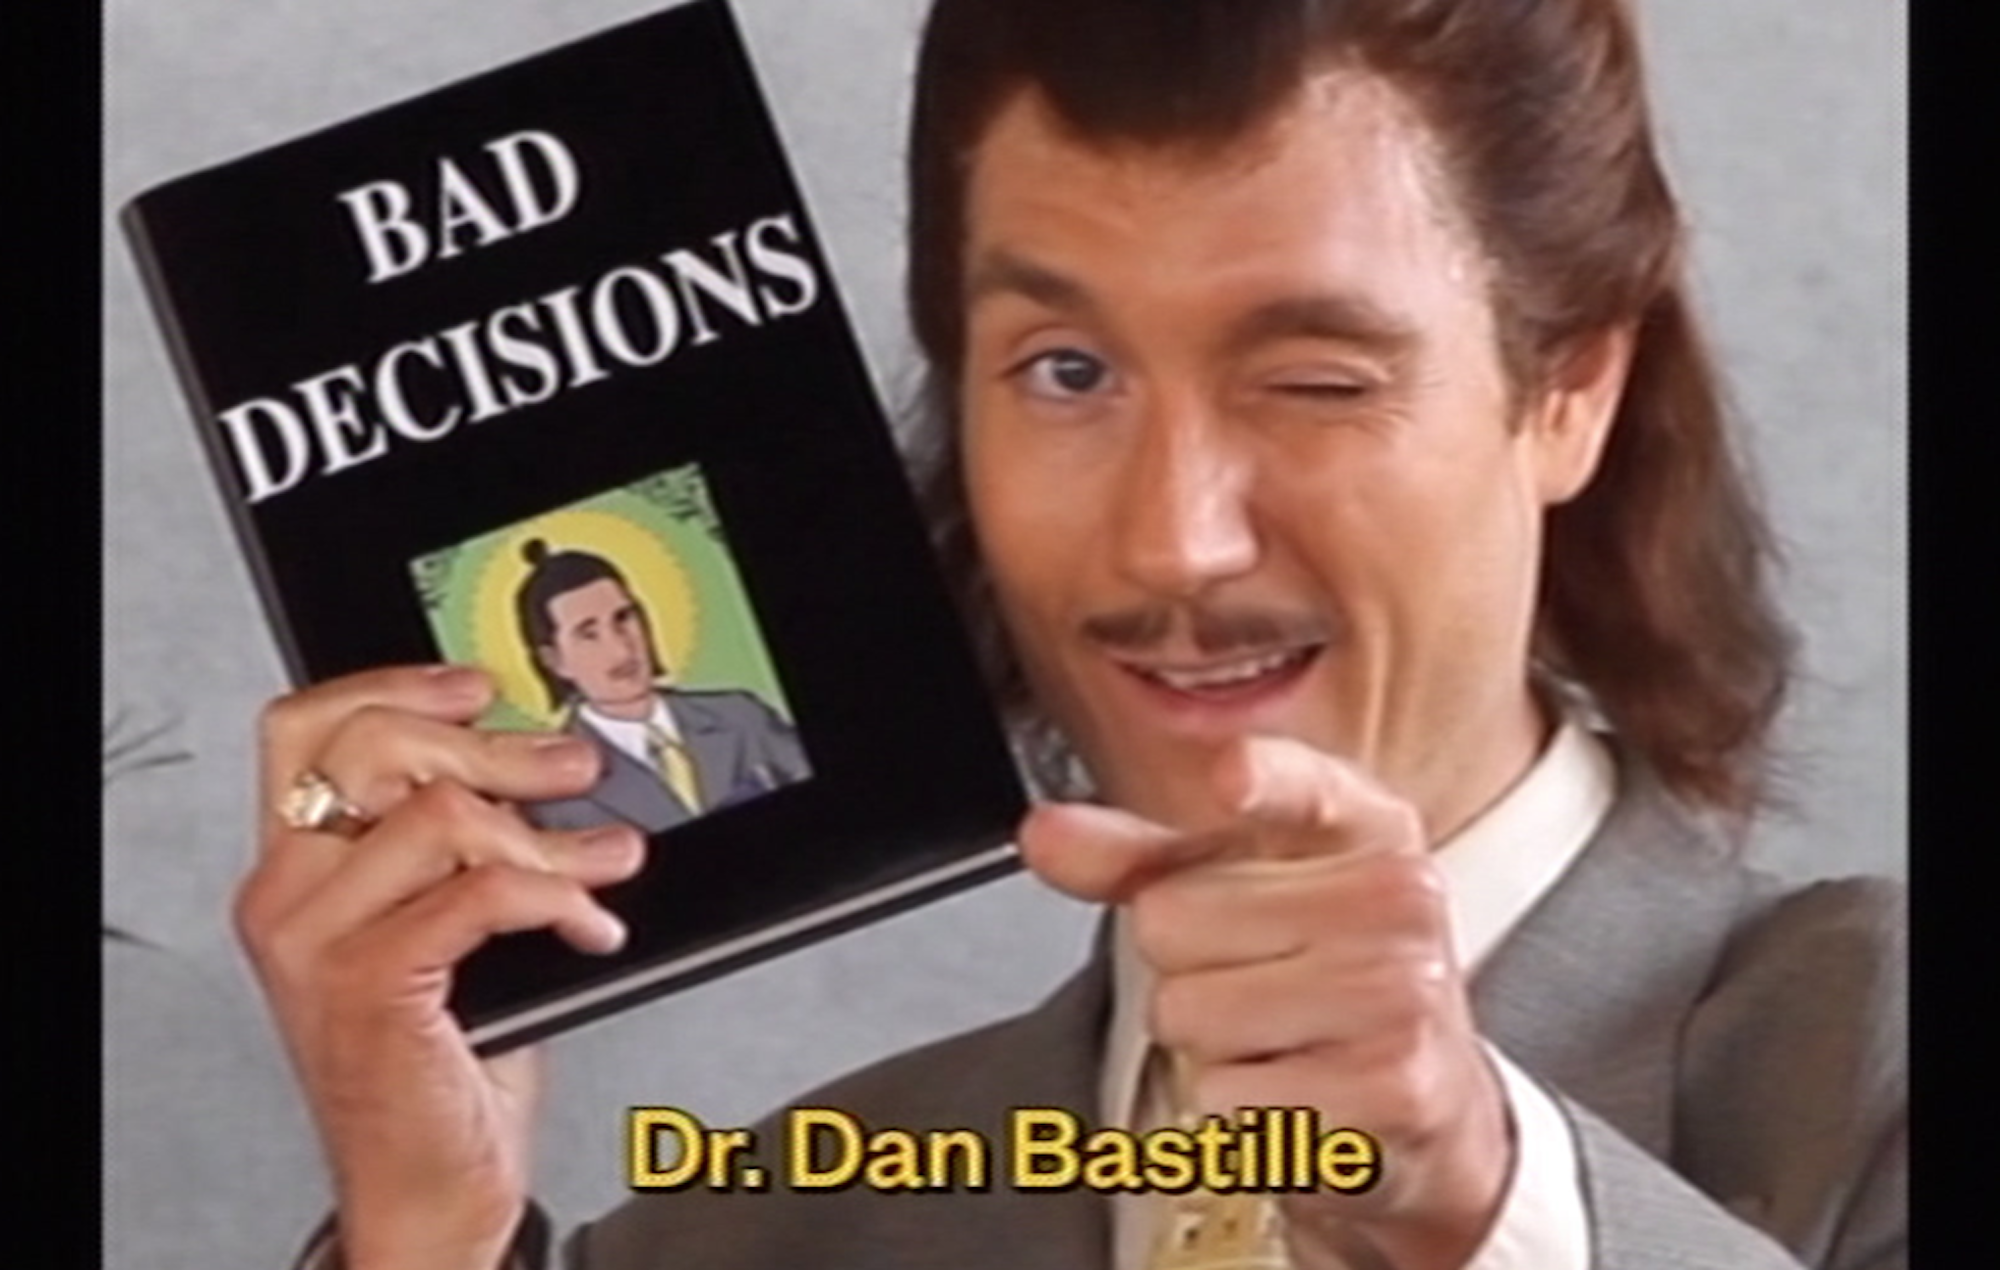 Watch Bastille's Dan Smith play a self-help guru in the video for 'Bad Decisions'